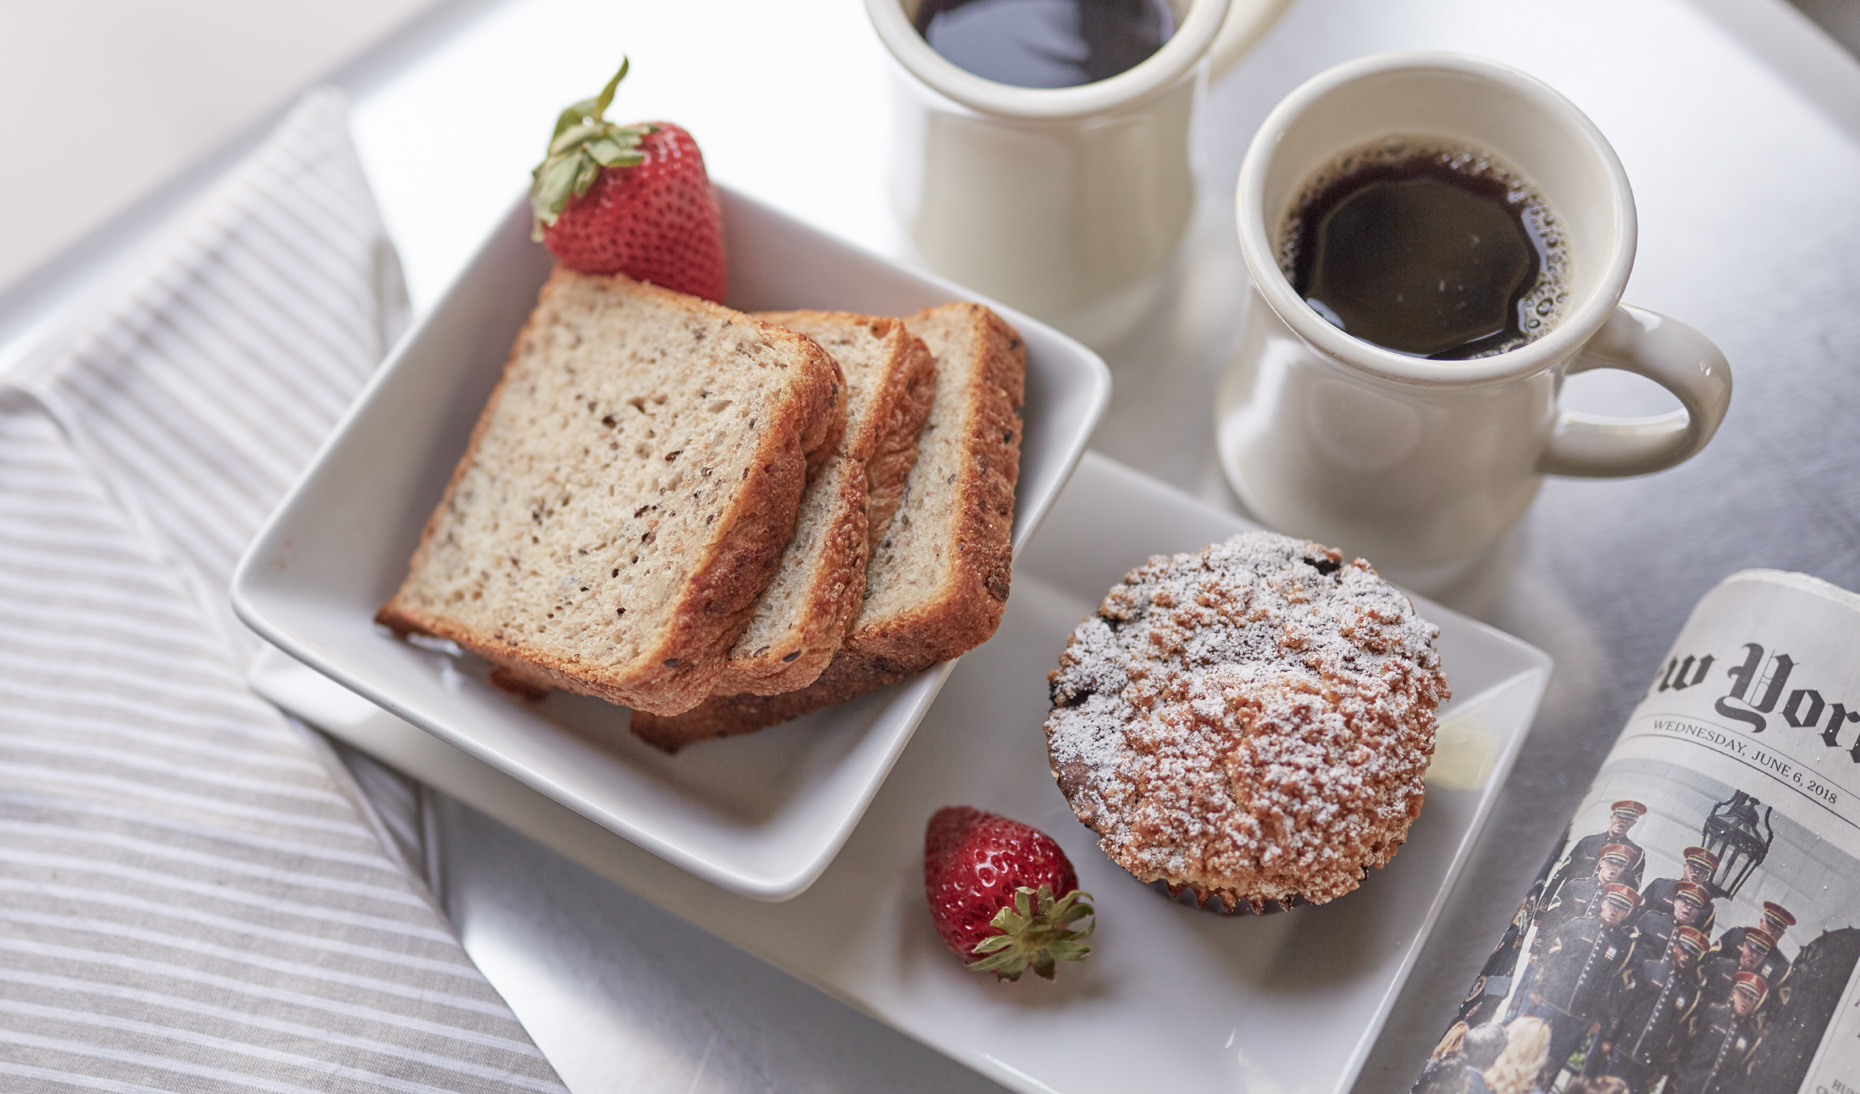 Totast and muffin and  morning coffee on white tray shot for Senza Hotel and Spa in Napa California